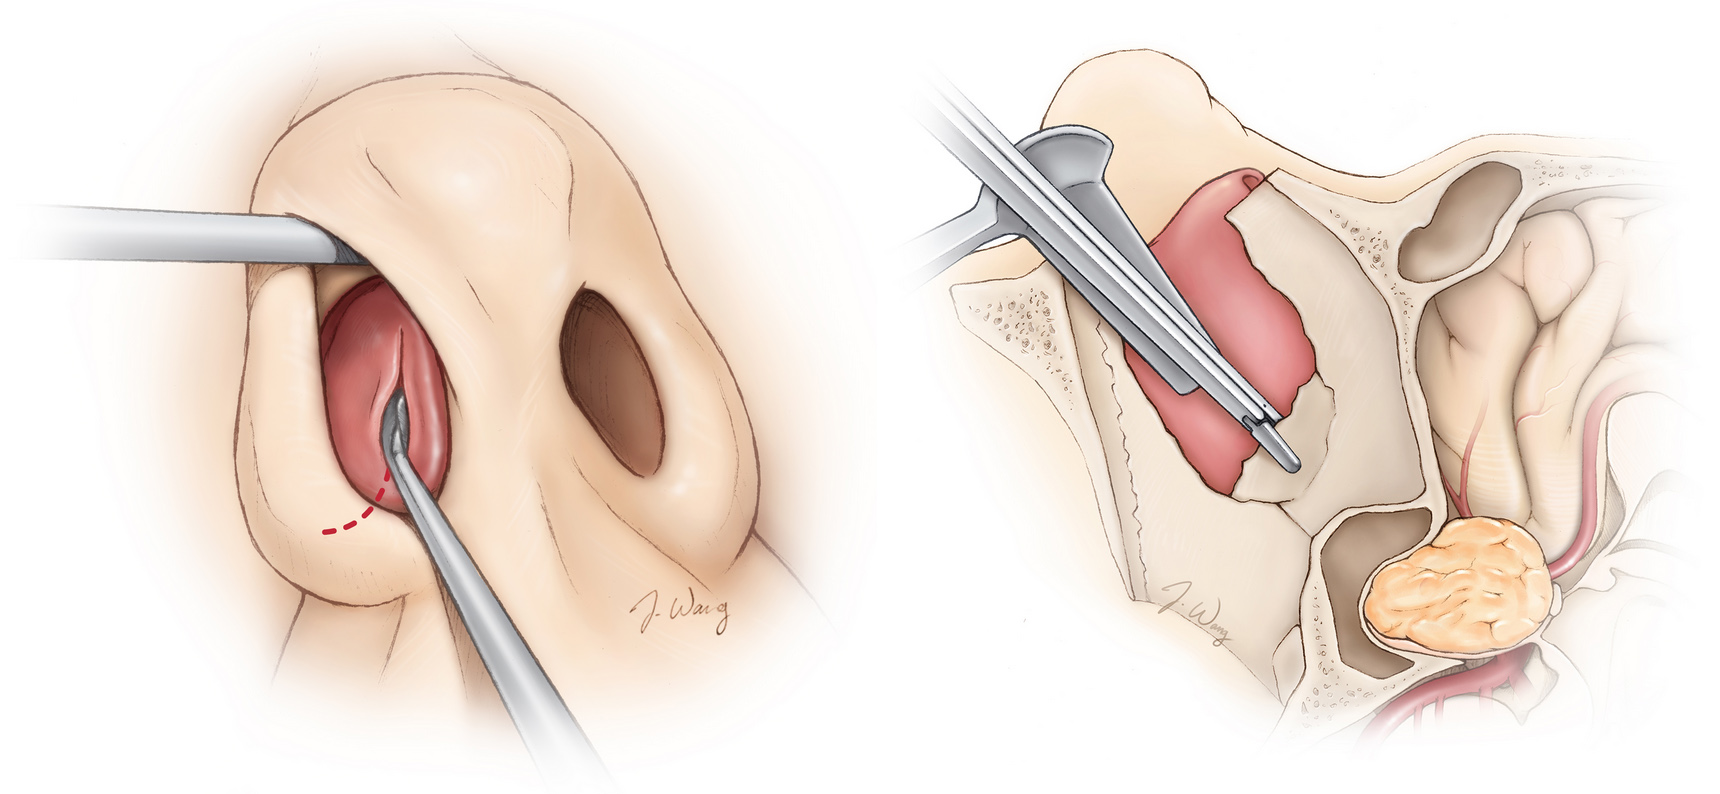 Figure 3. A small incision is made in the mucosa (left), and surgical instruments advance deeper into the nasal passages toward the sphenoid bone (right).